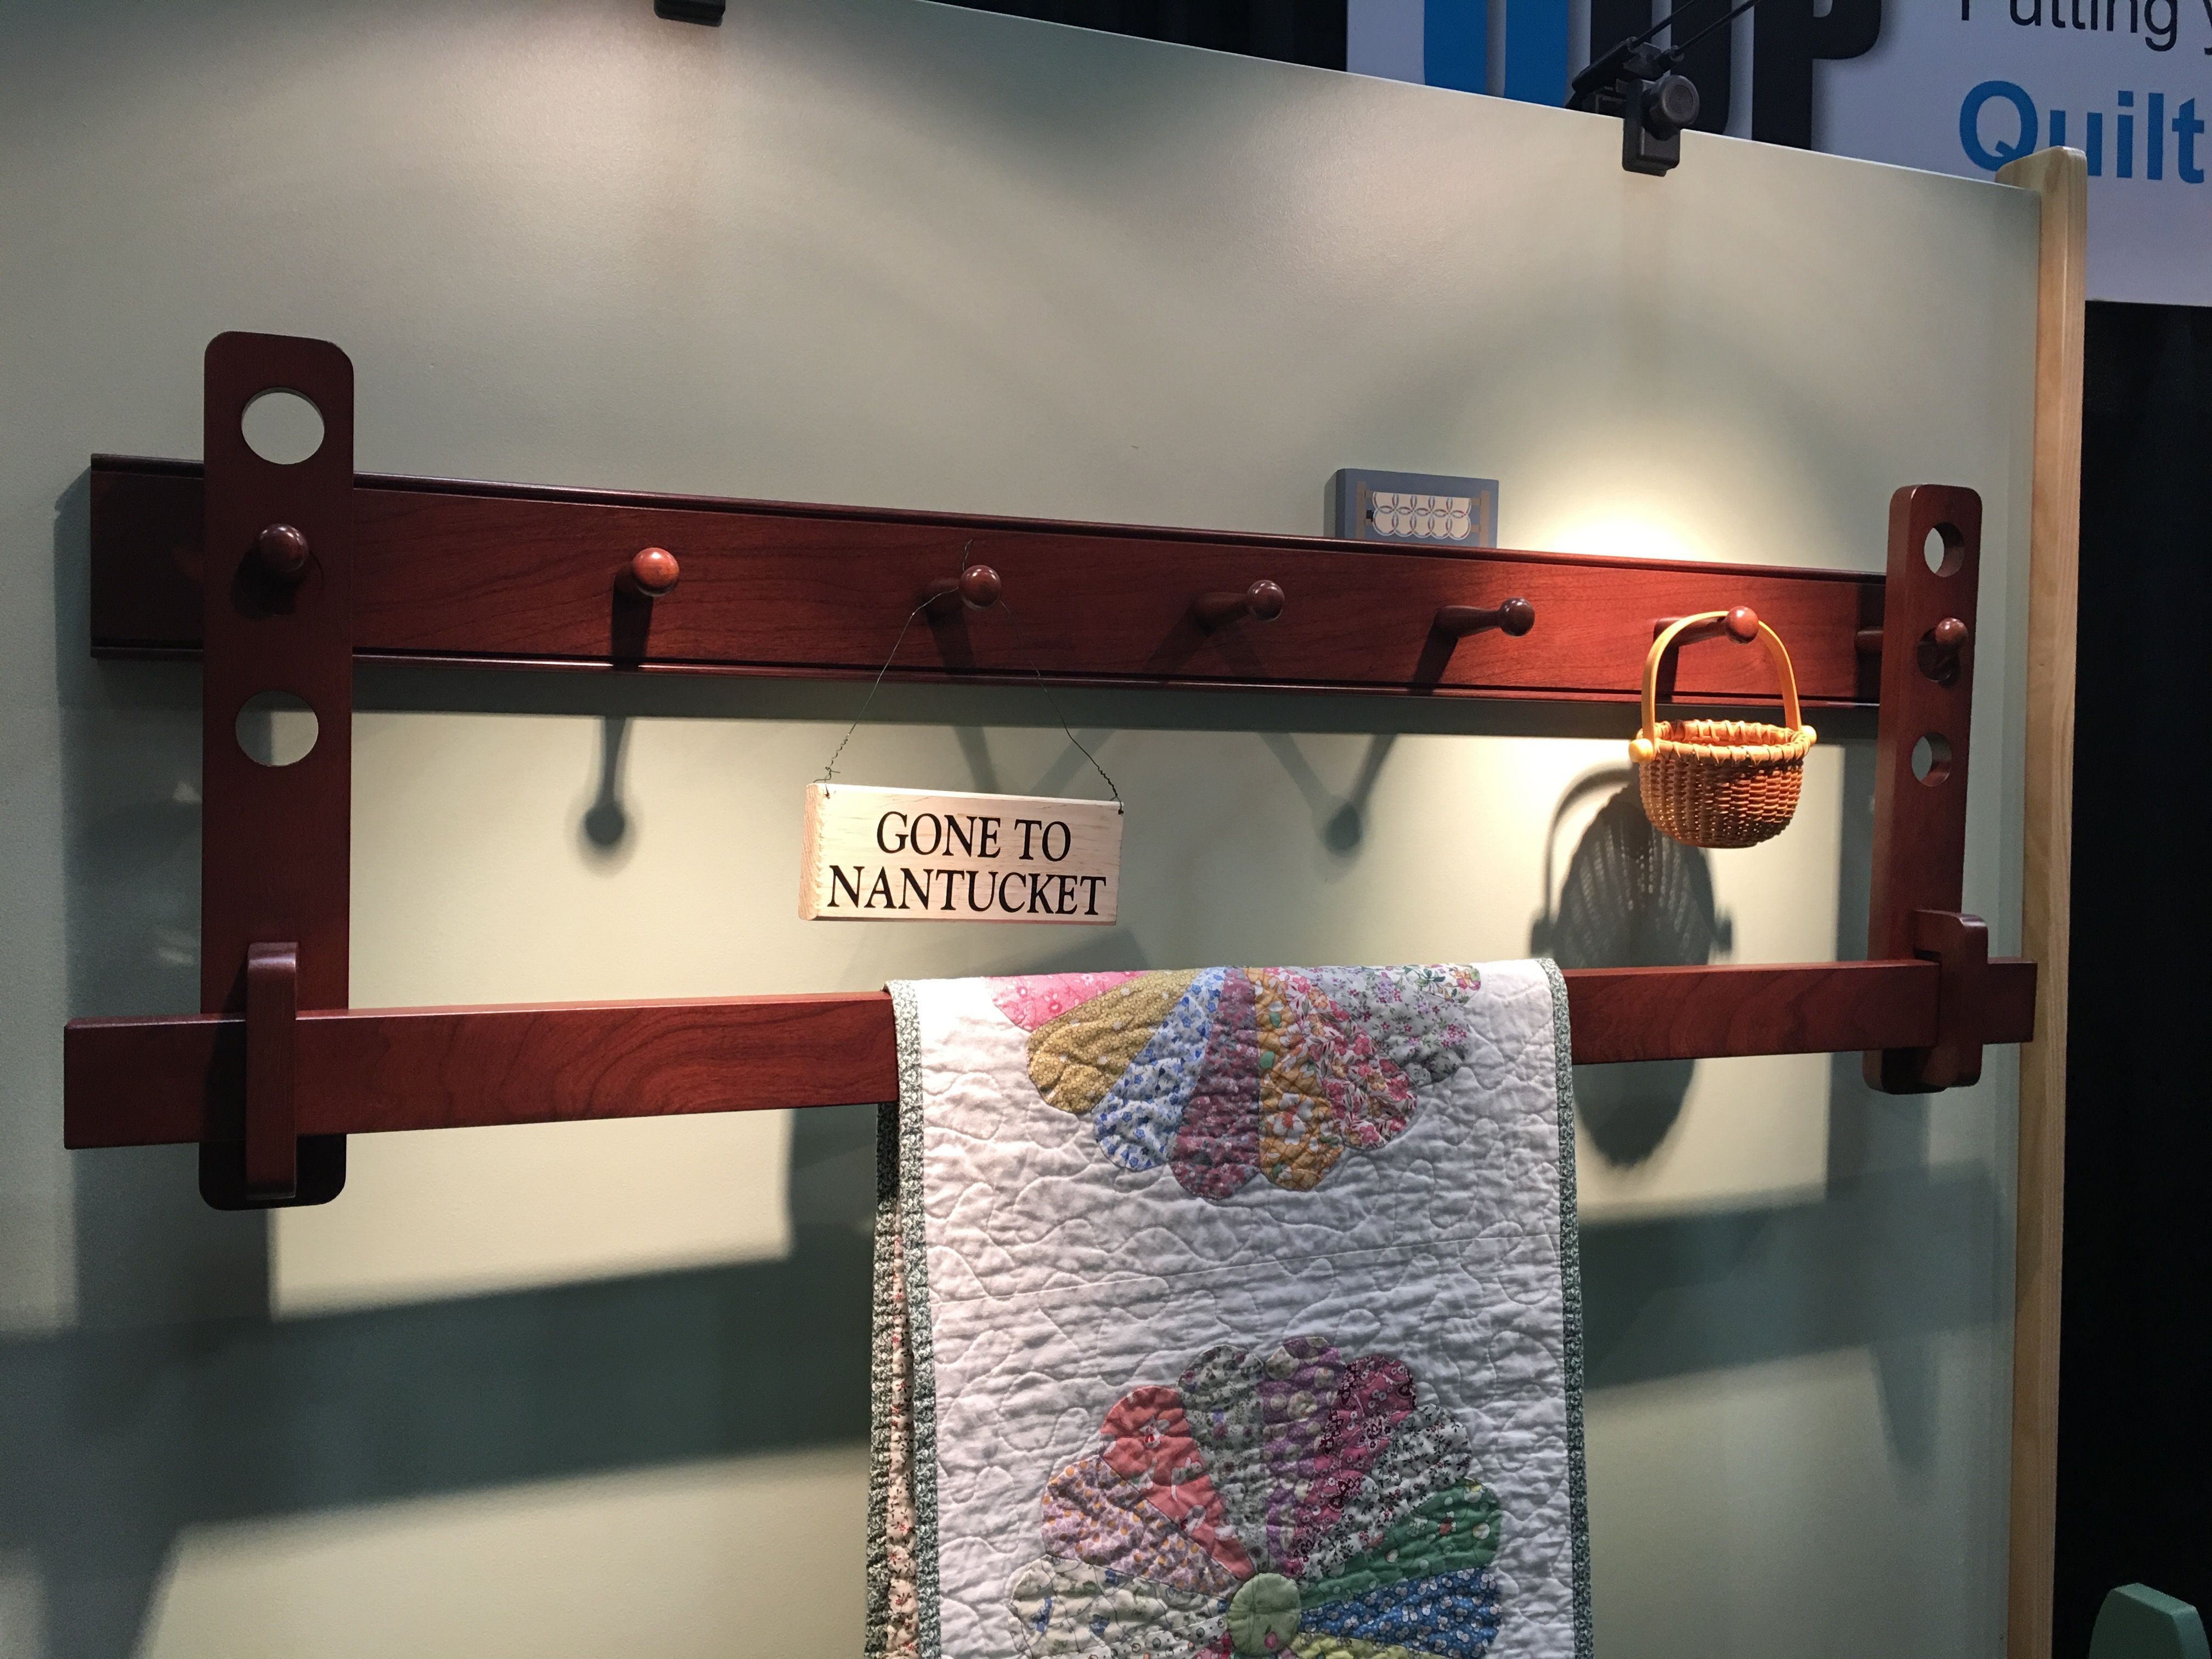 Shaker Style - Adjustable Peg Rail - Hang your favorite quilt on one of our wall shelves or racks. Your quilts can be used with or without a sleeve. Shelves hold small items for display, and racks allow you to make width and height adjustments.